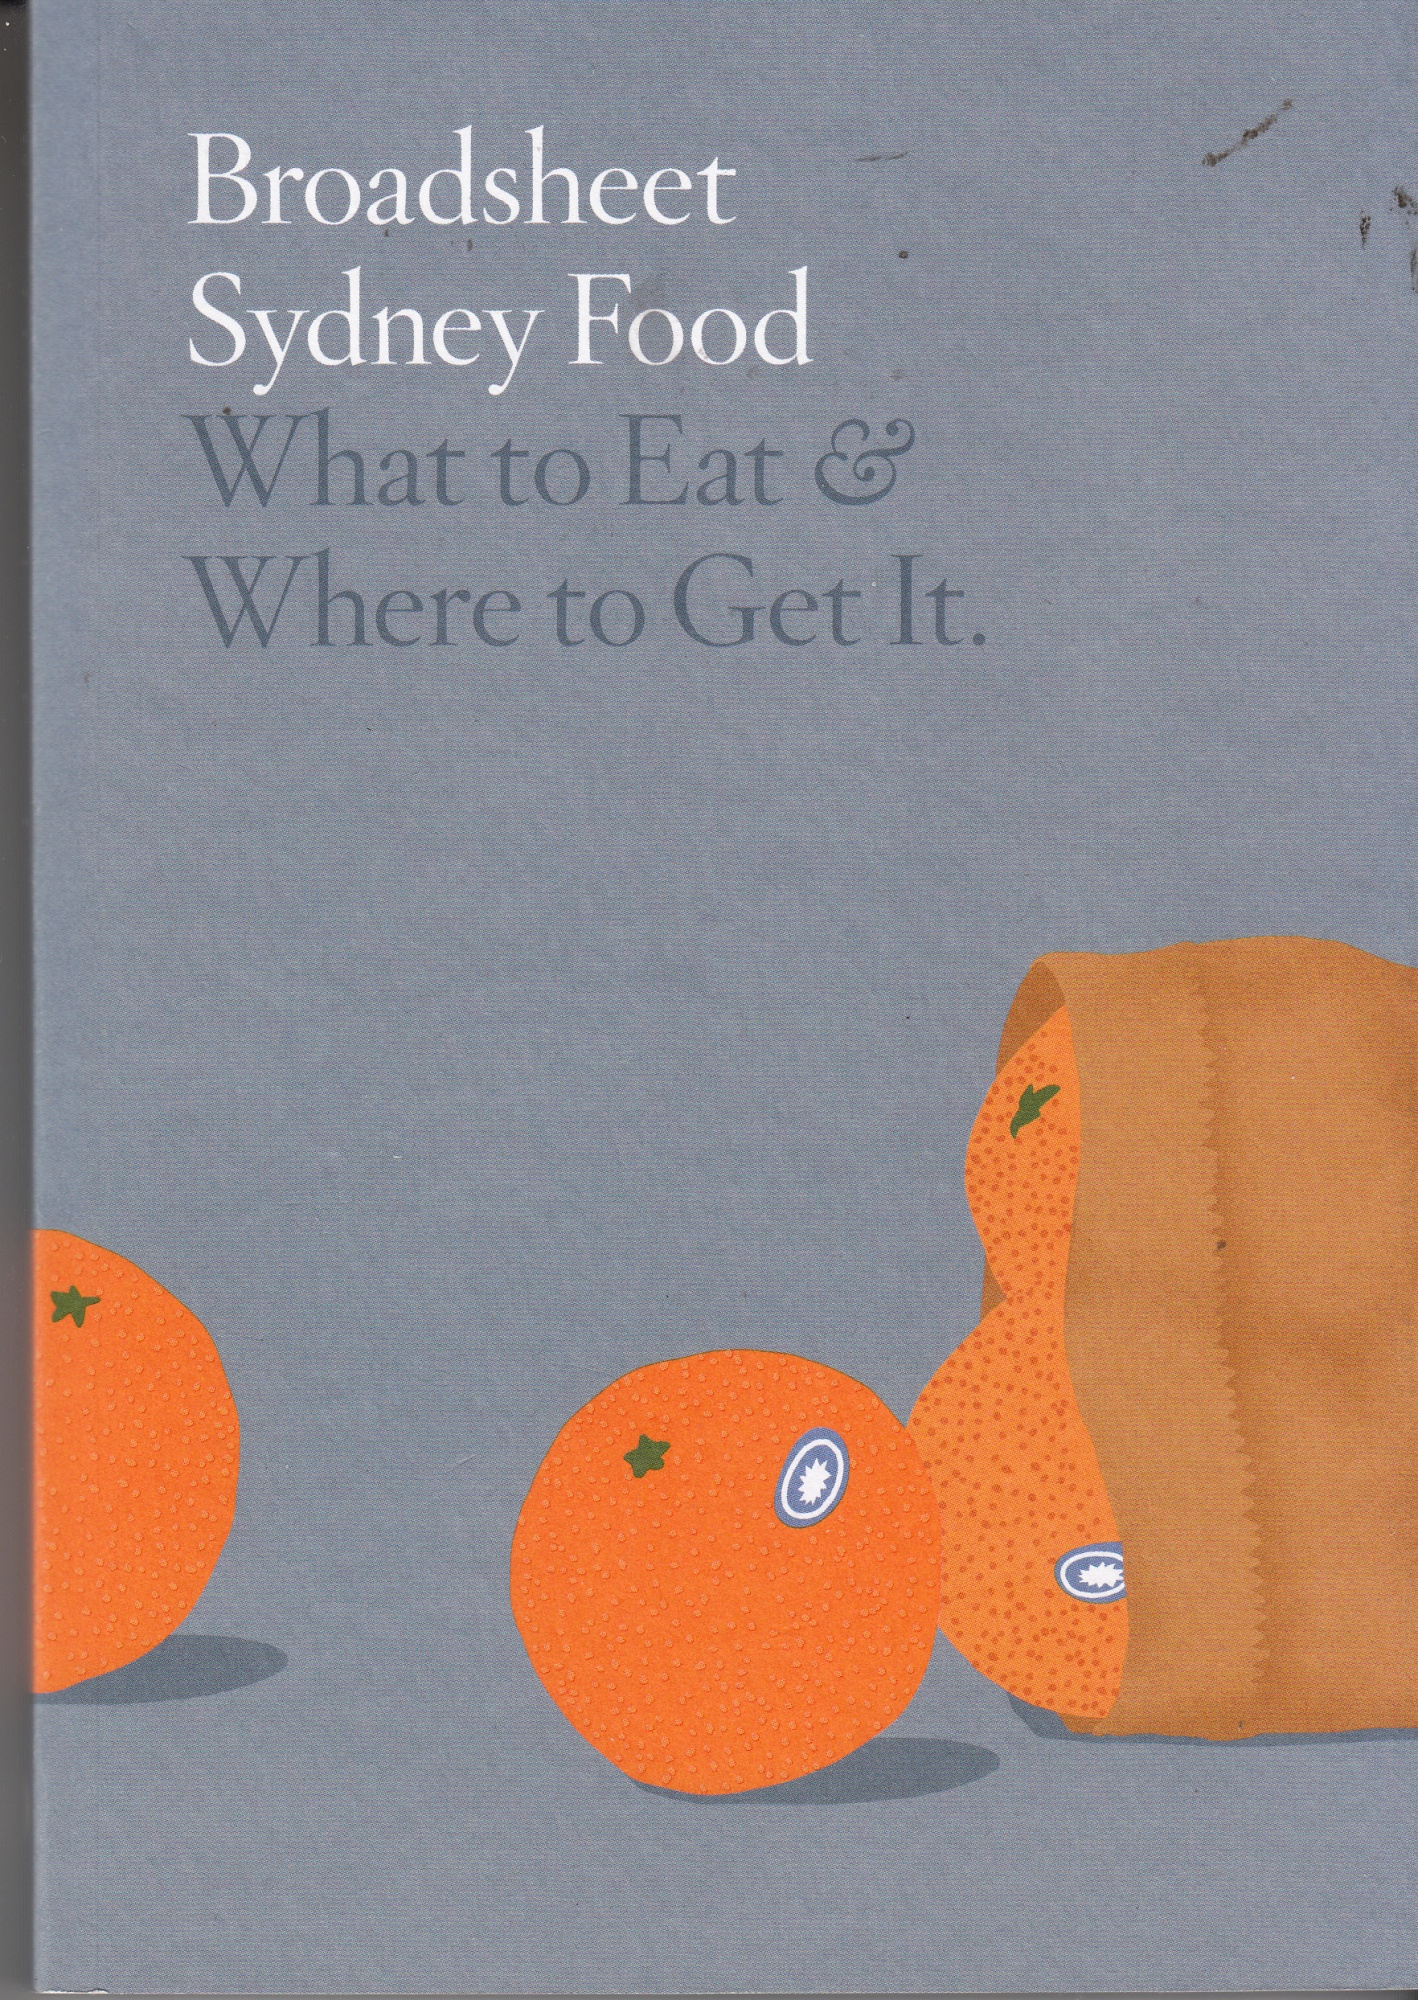 Broadsheet Sydney Food by Broadsheet Media, ISBN: 9780646978499